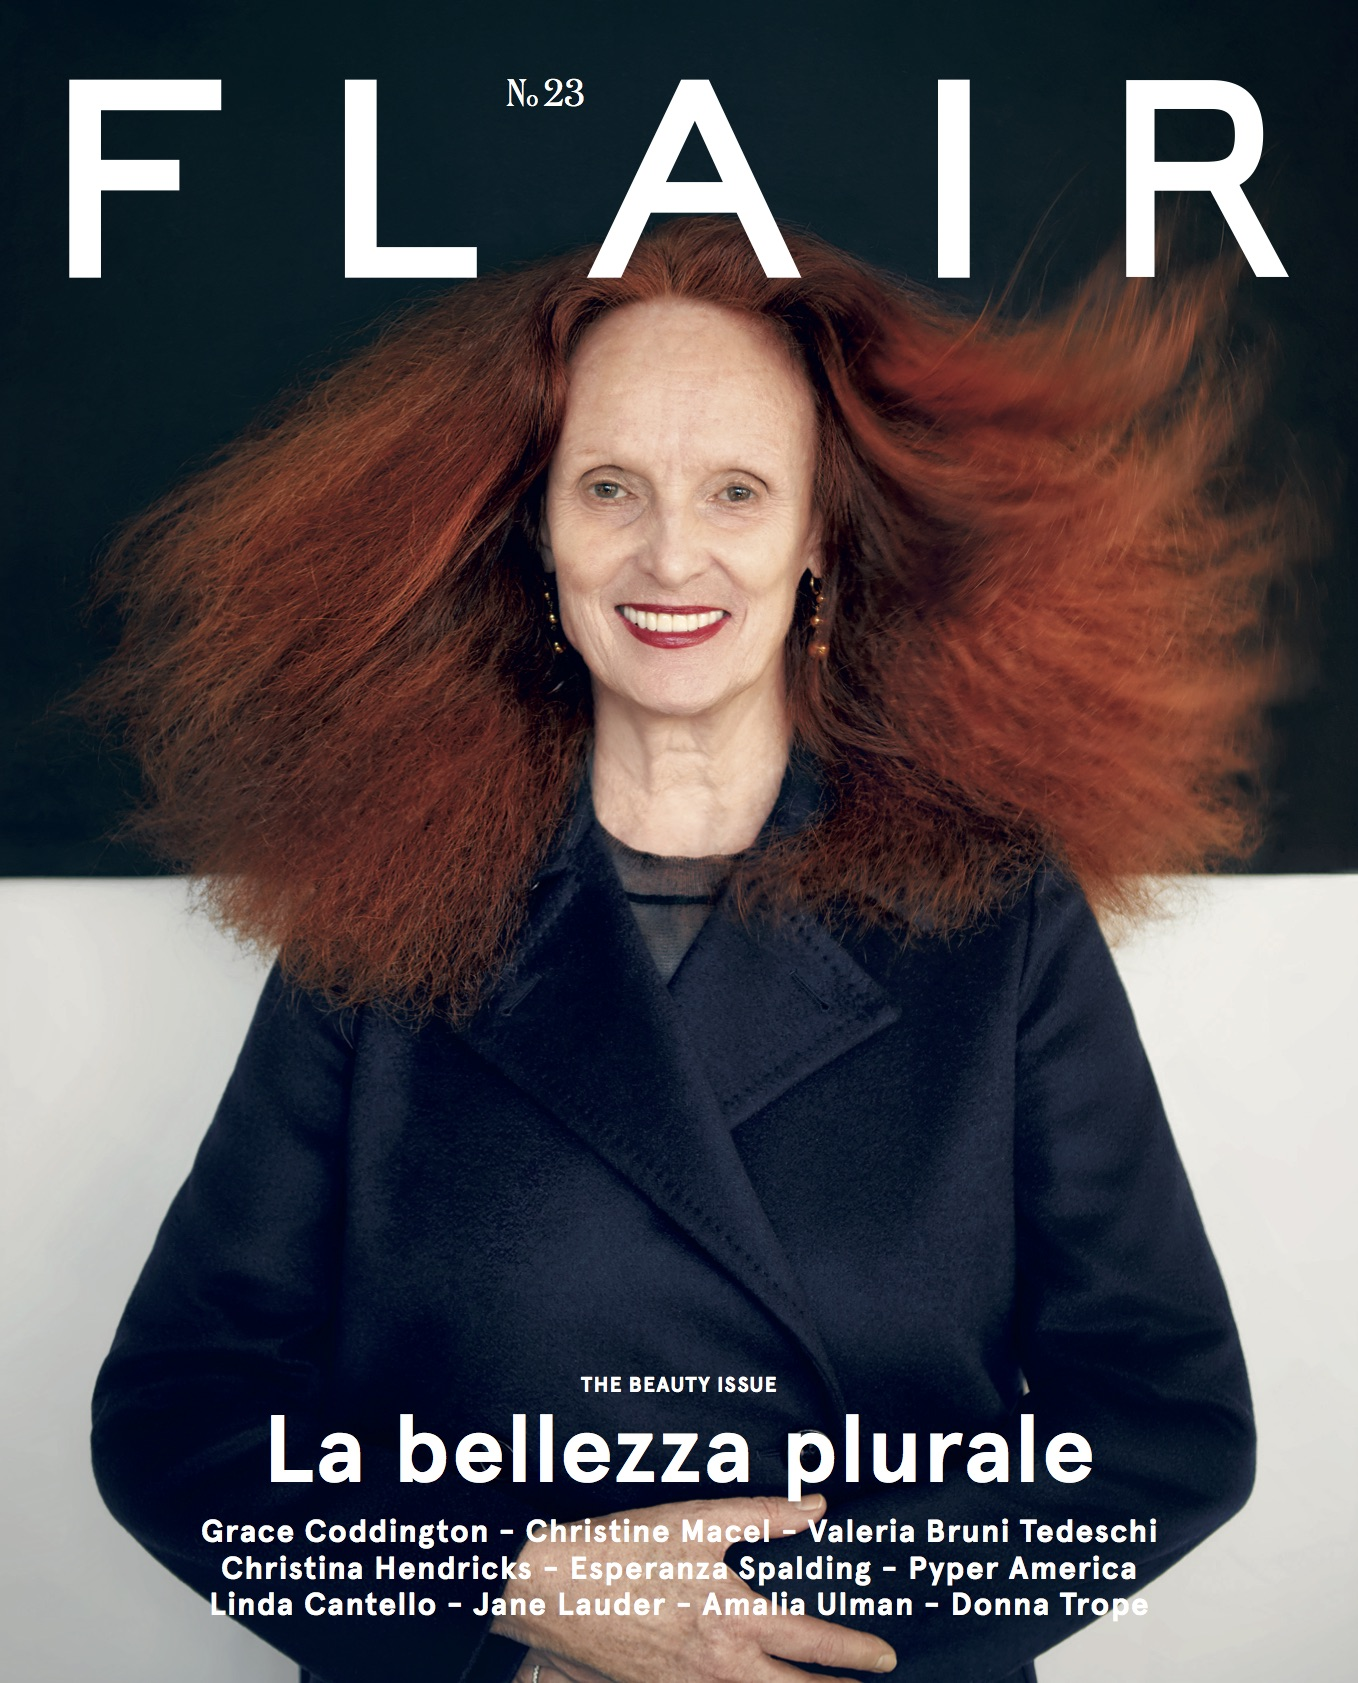 Flair / Jason Schmidt / Grace Coddington